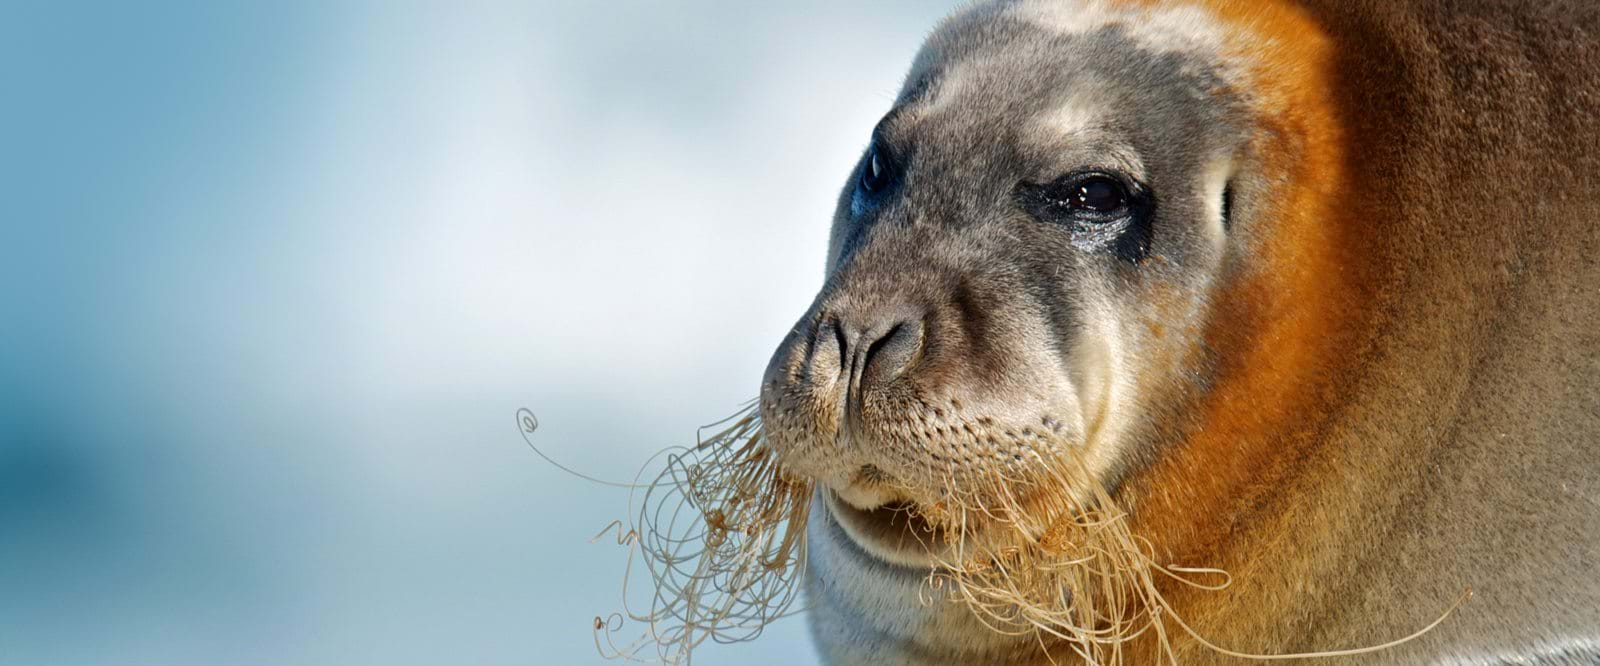 Artic wildlife, bearded seal